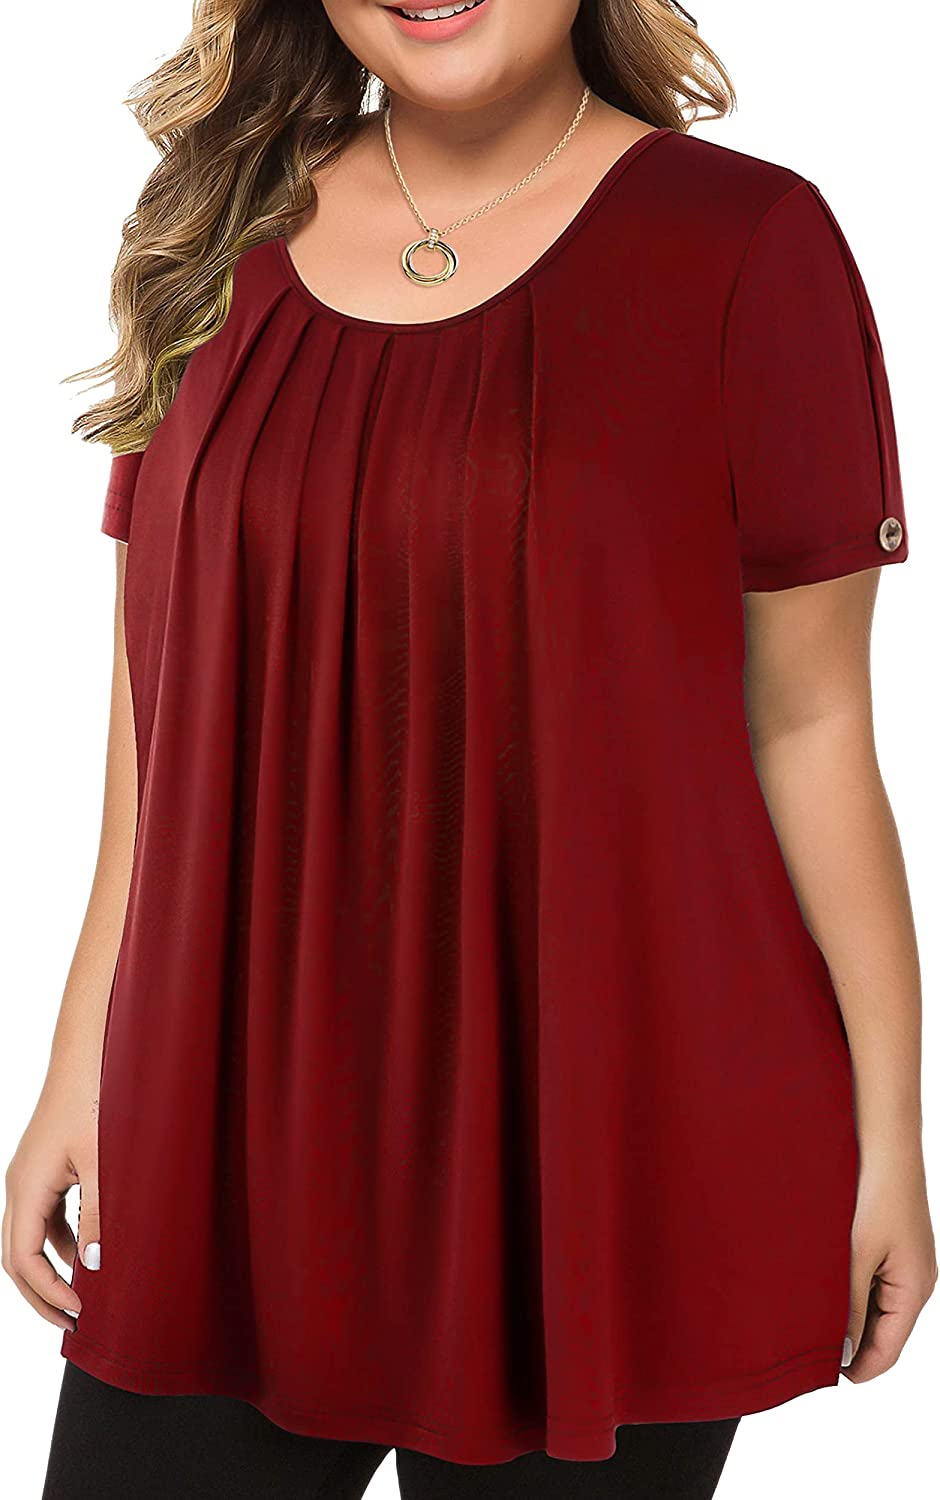 LINJOU Women's Plus Size Tops Short Sleeve Flowy Shirts Casual Blouses Tunic Tops